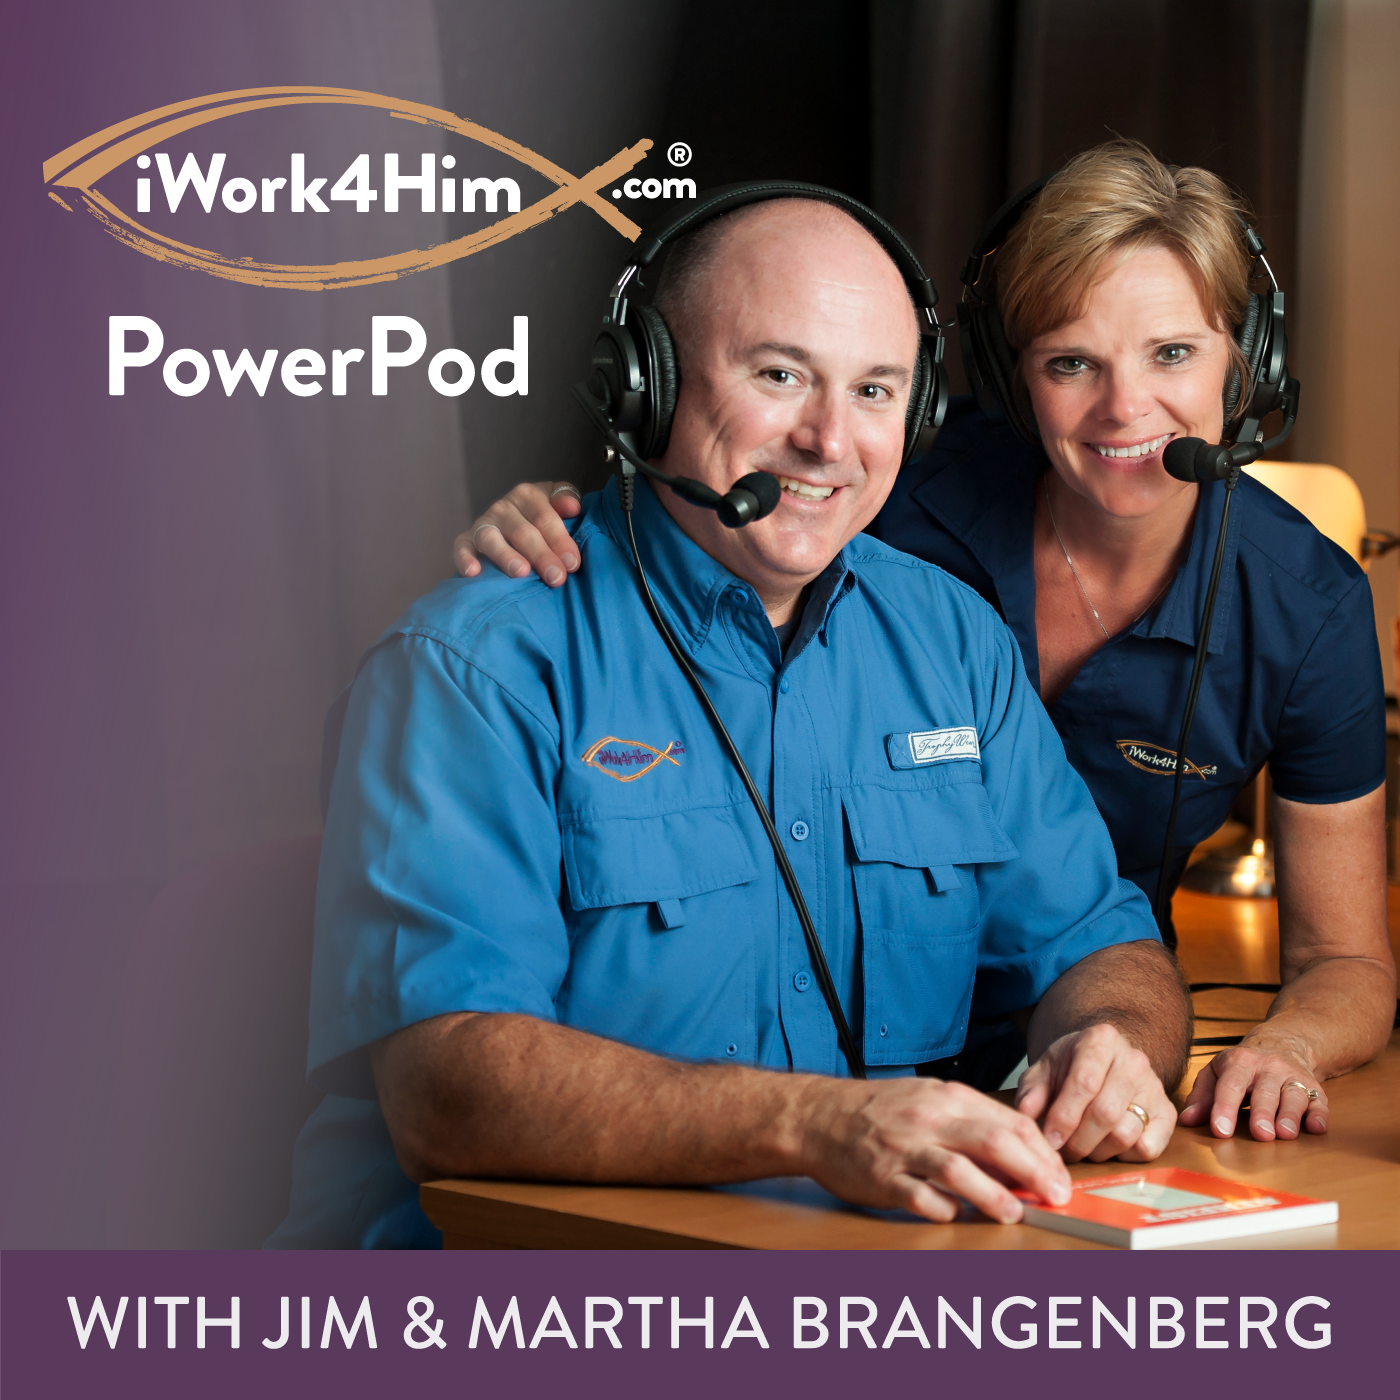 iW4H-PowerPod-Image-2019.png